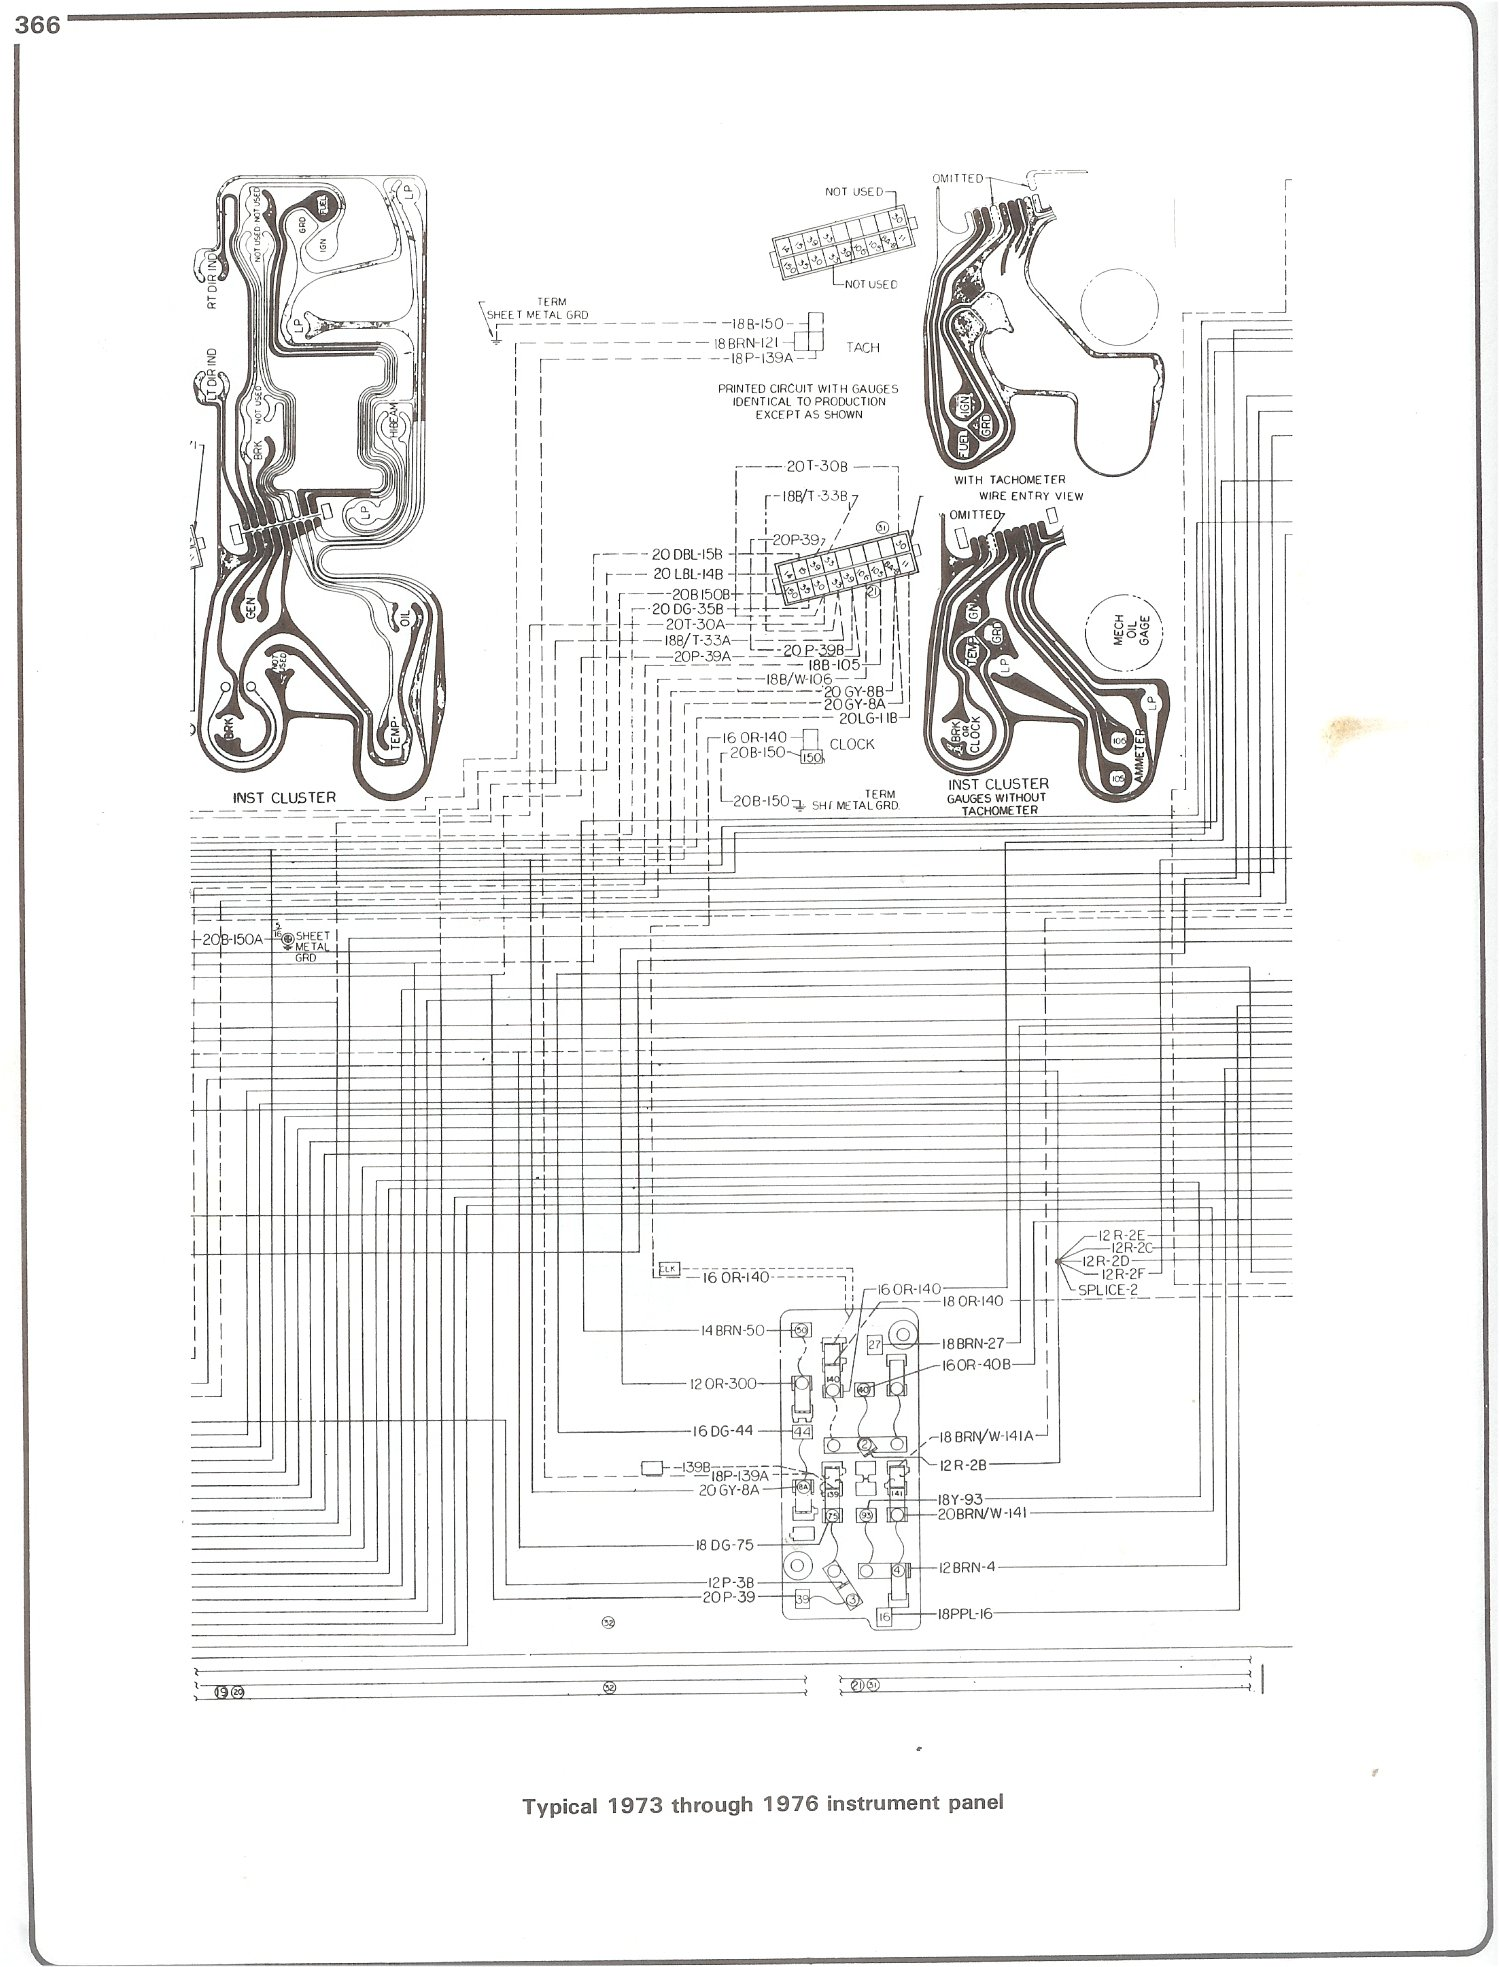 73 76_instrument complete 73 87 wiring diagrams Jeep Power Door Lock Wiring Diagram at bakdesigns.co